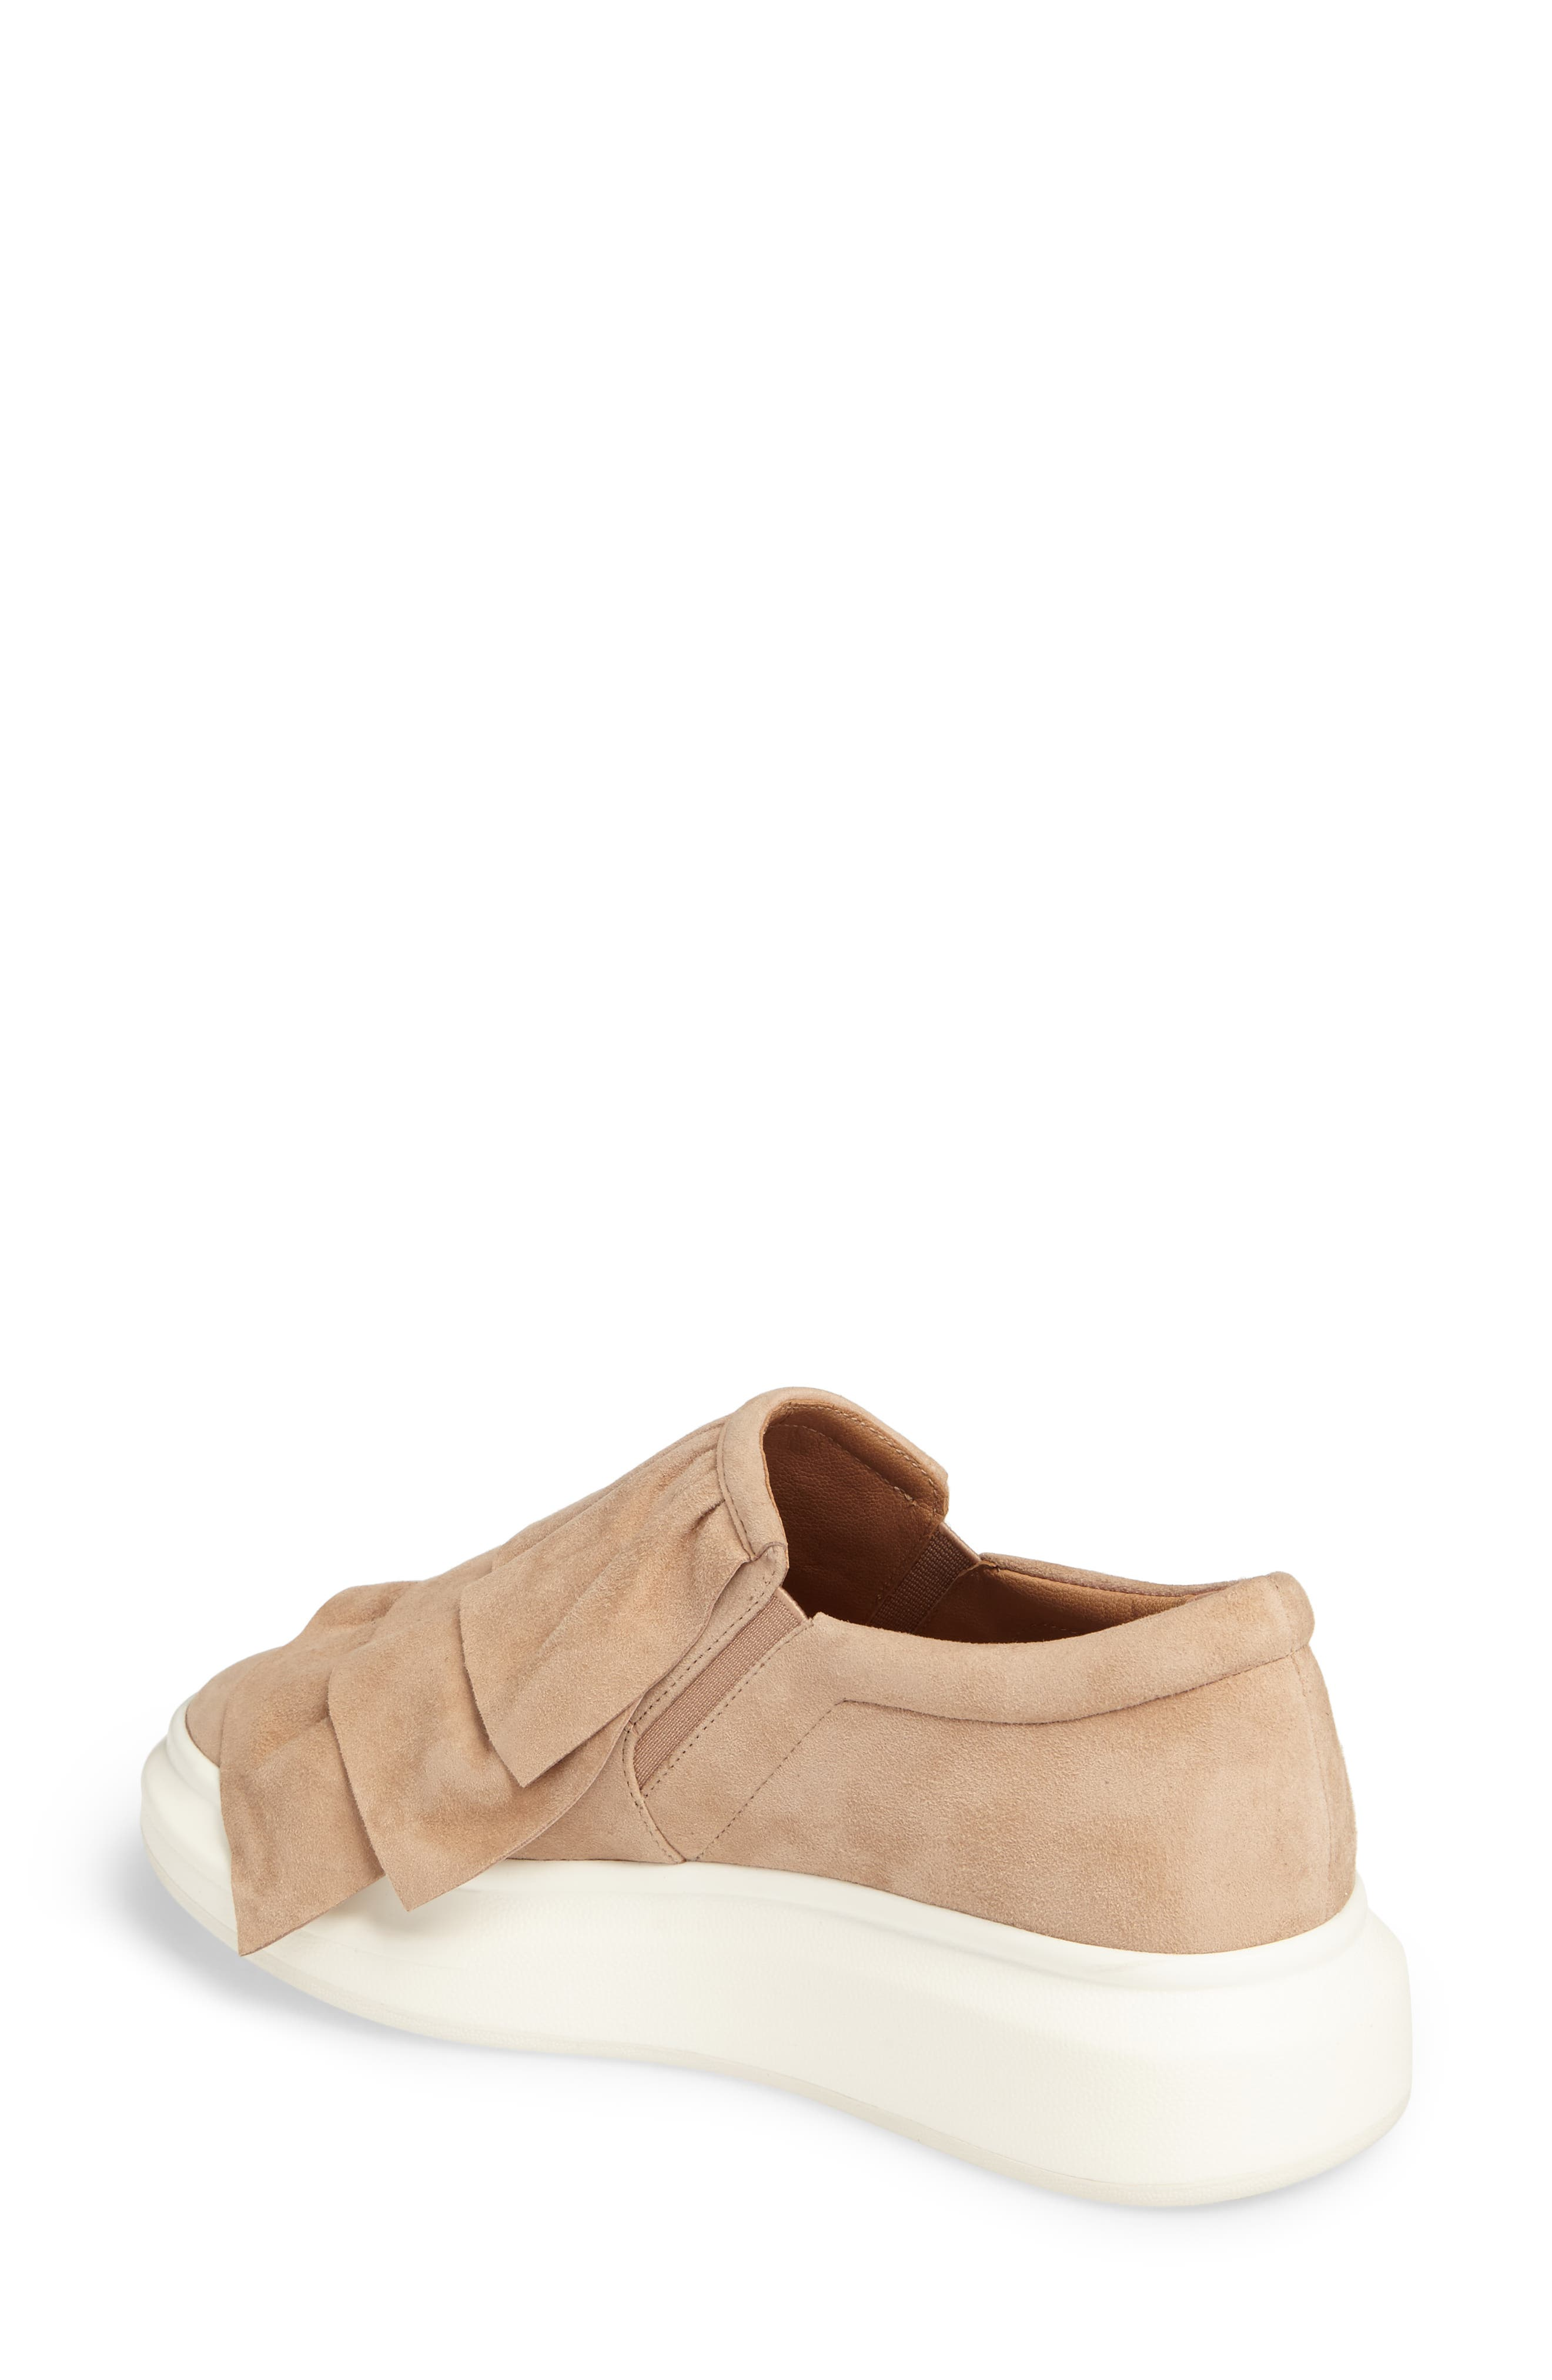 Lolo Ruffle Slip-On,                             Alternate thumbnail 2, color,                             Dusty Rose Suede